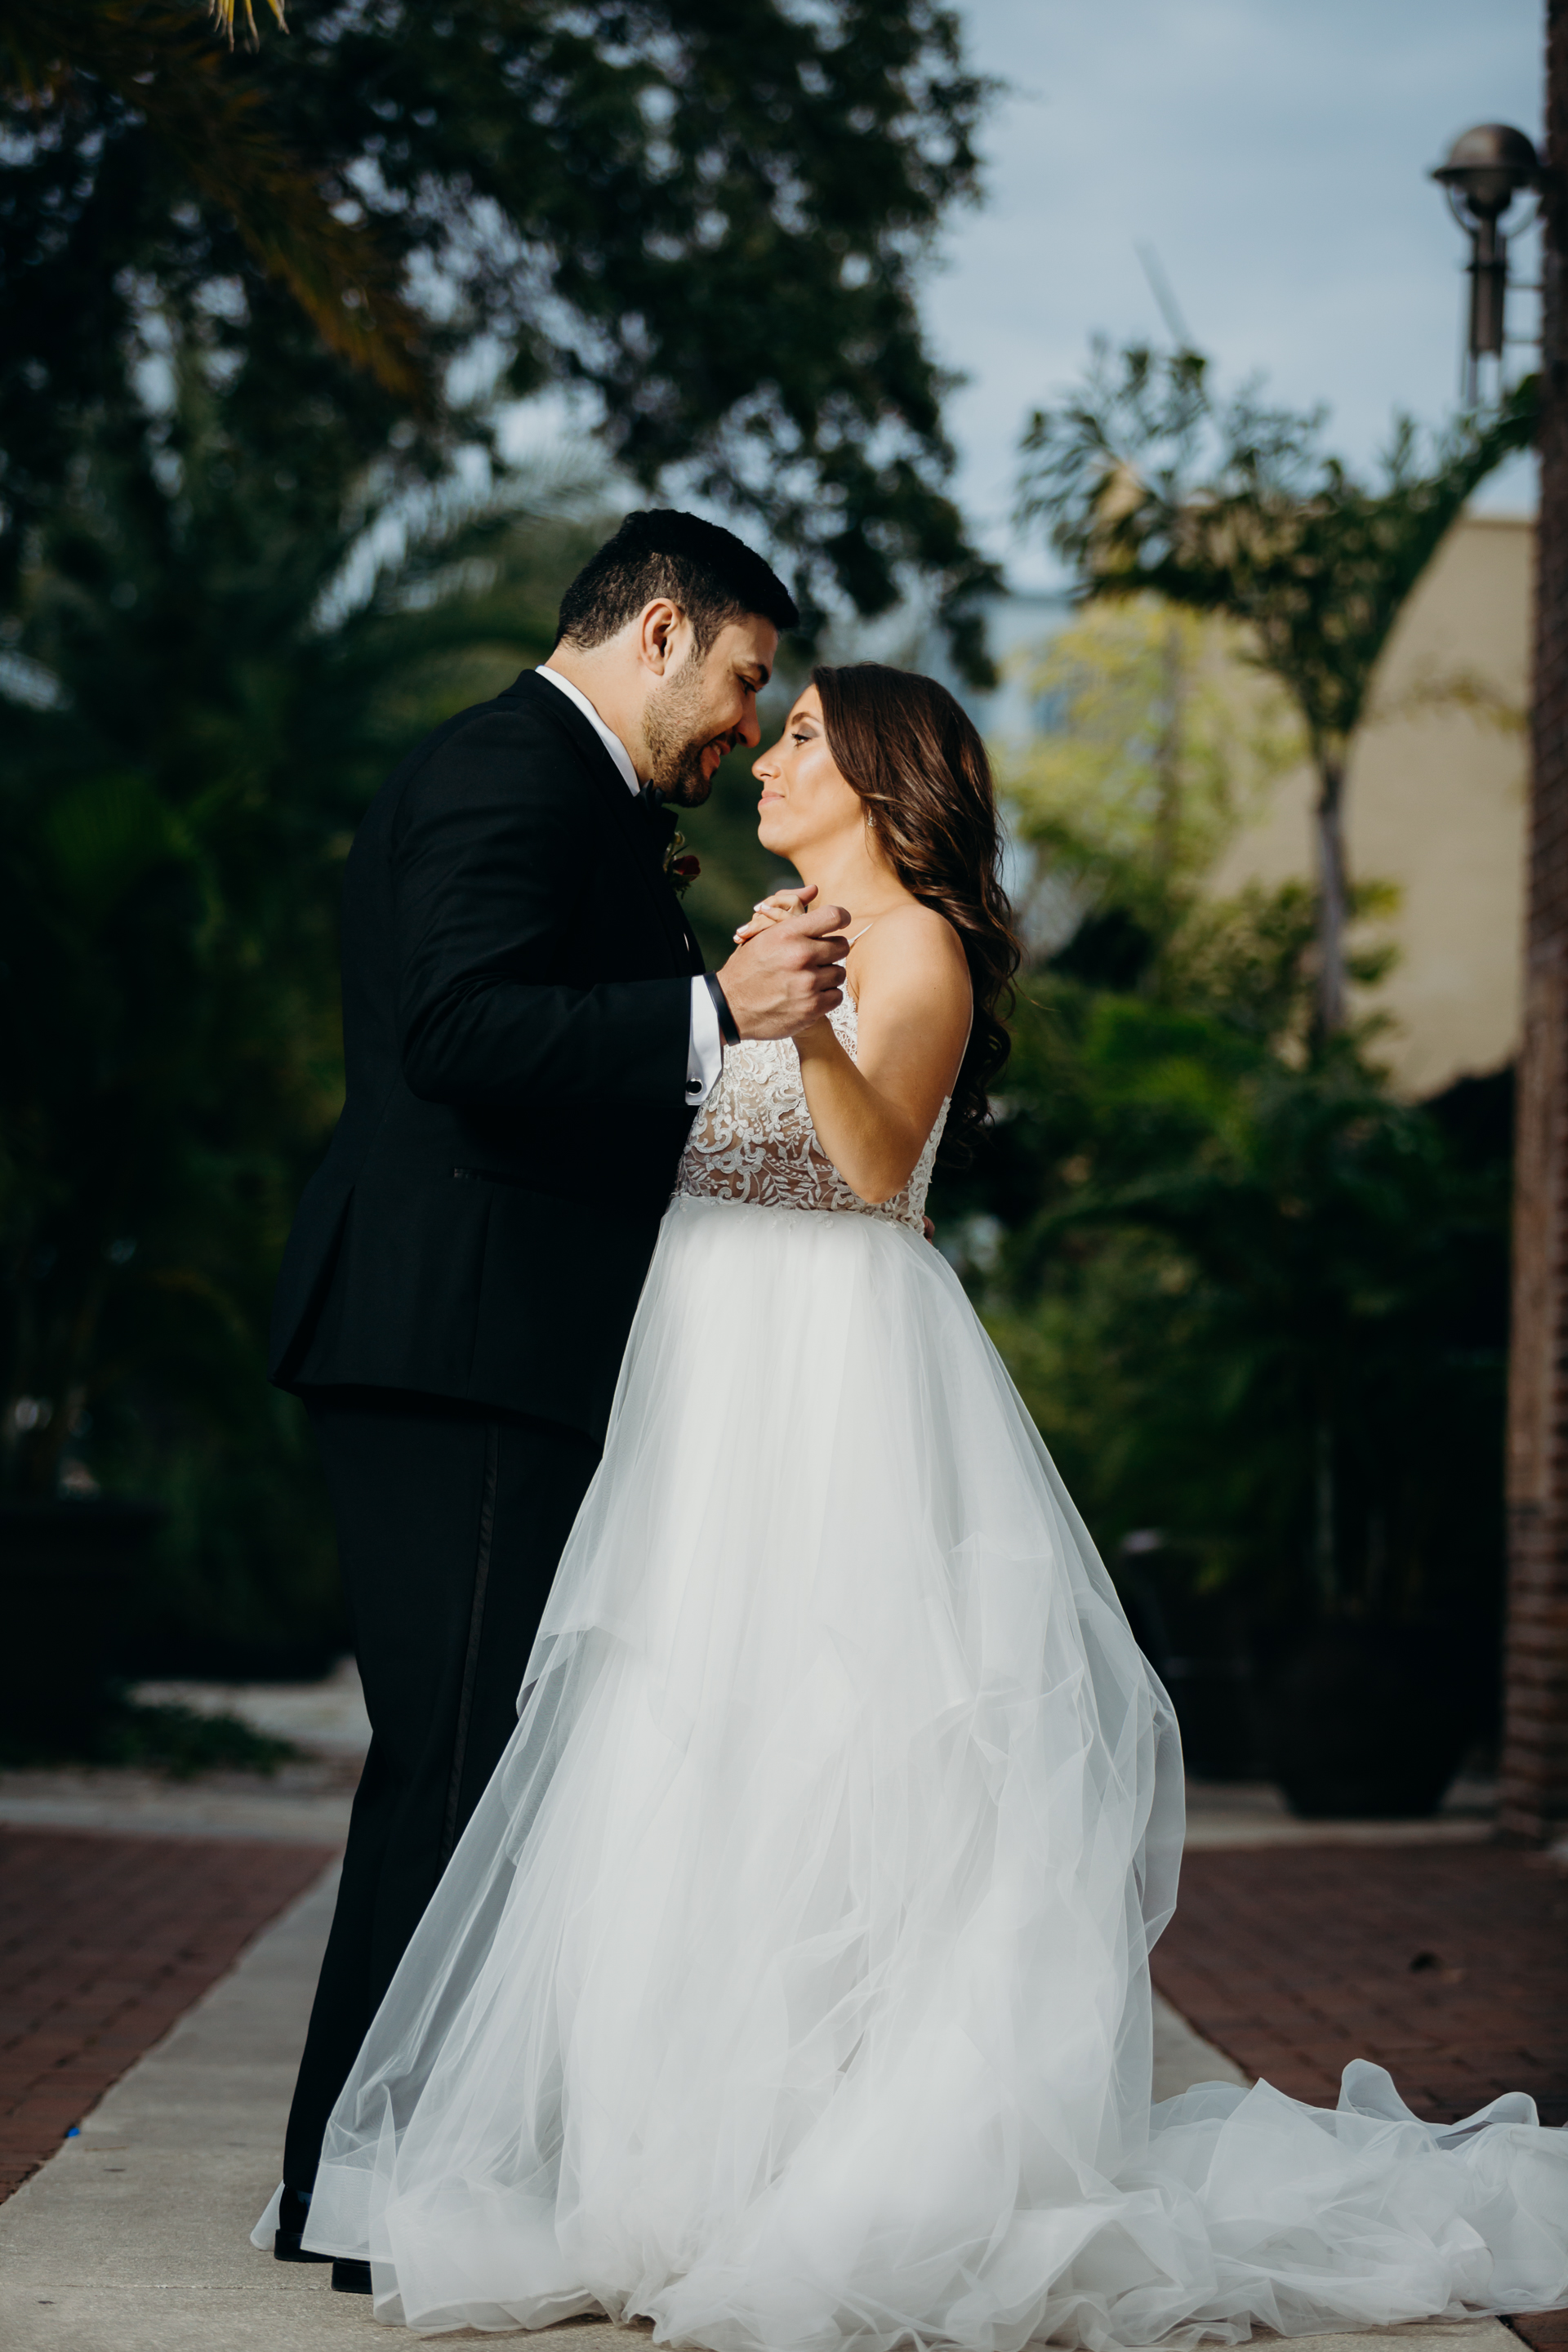 Gianna Keiko Atlanta San Francisco NYC Wedding Engagement Wedding Elopement Photographer_Sneak Peek-61.jpg